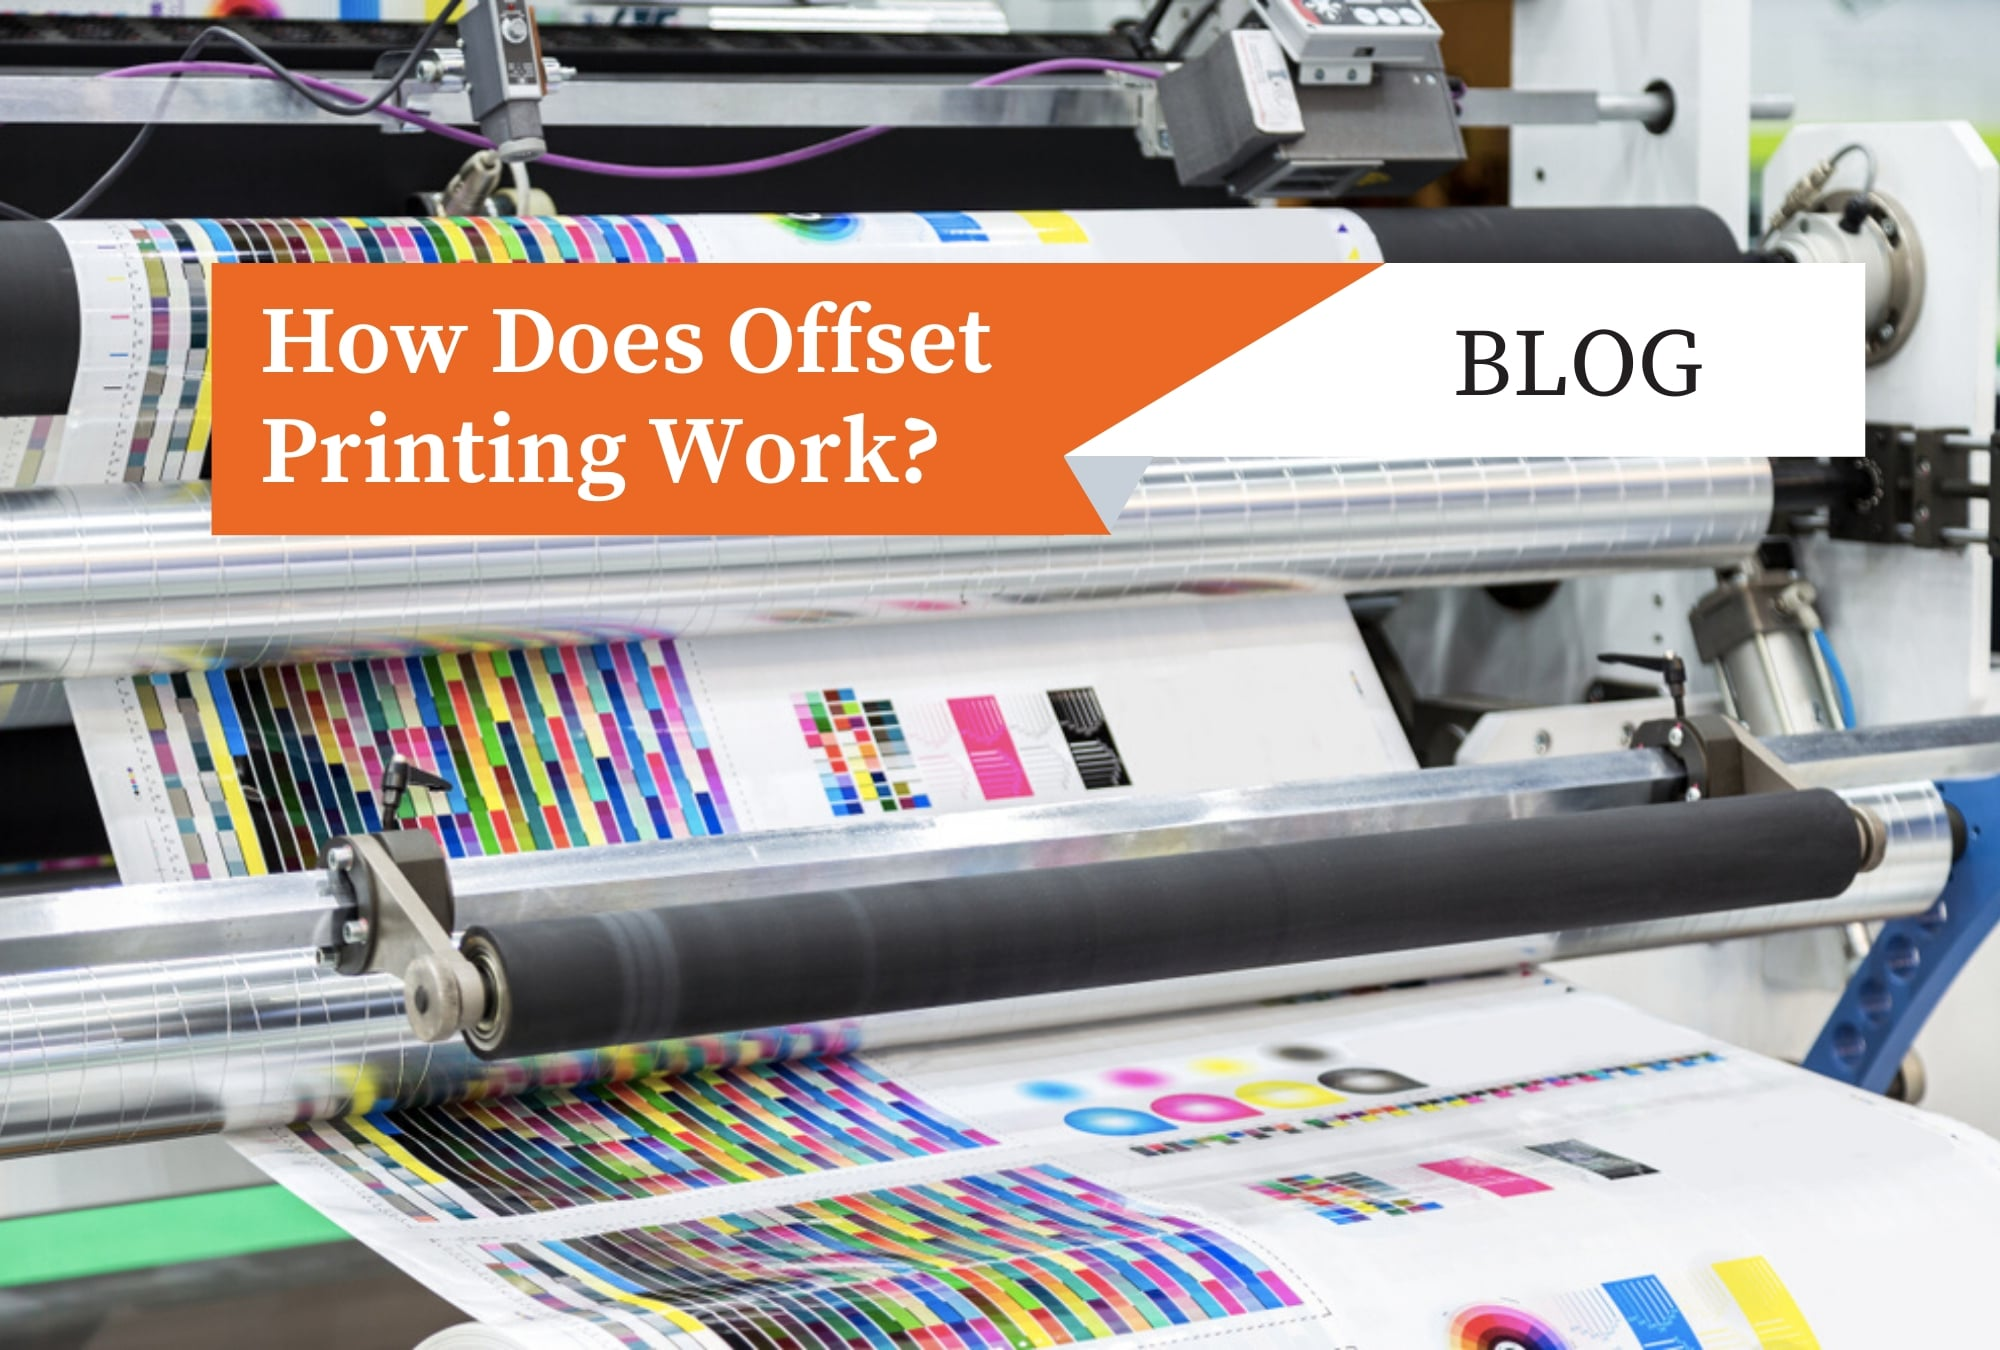 How Does Offset Printing Work